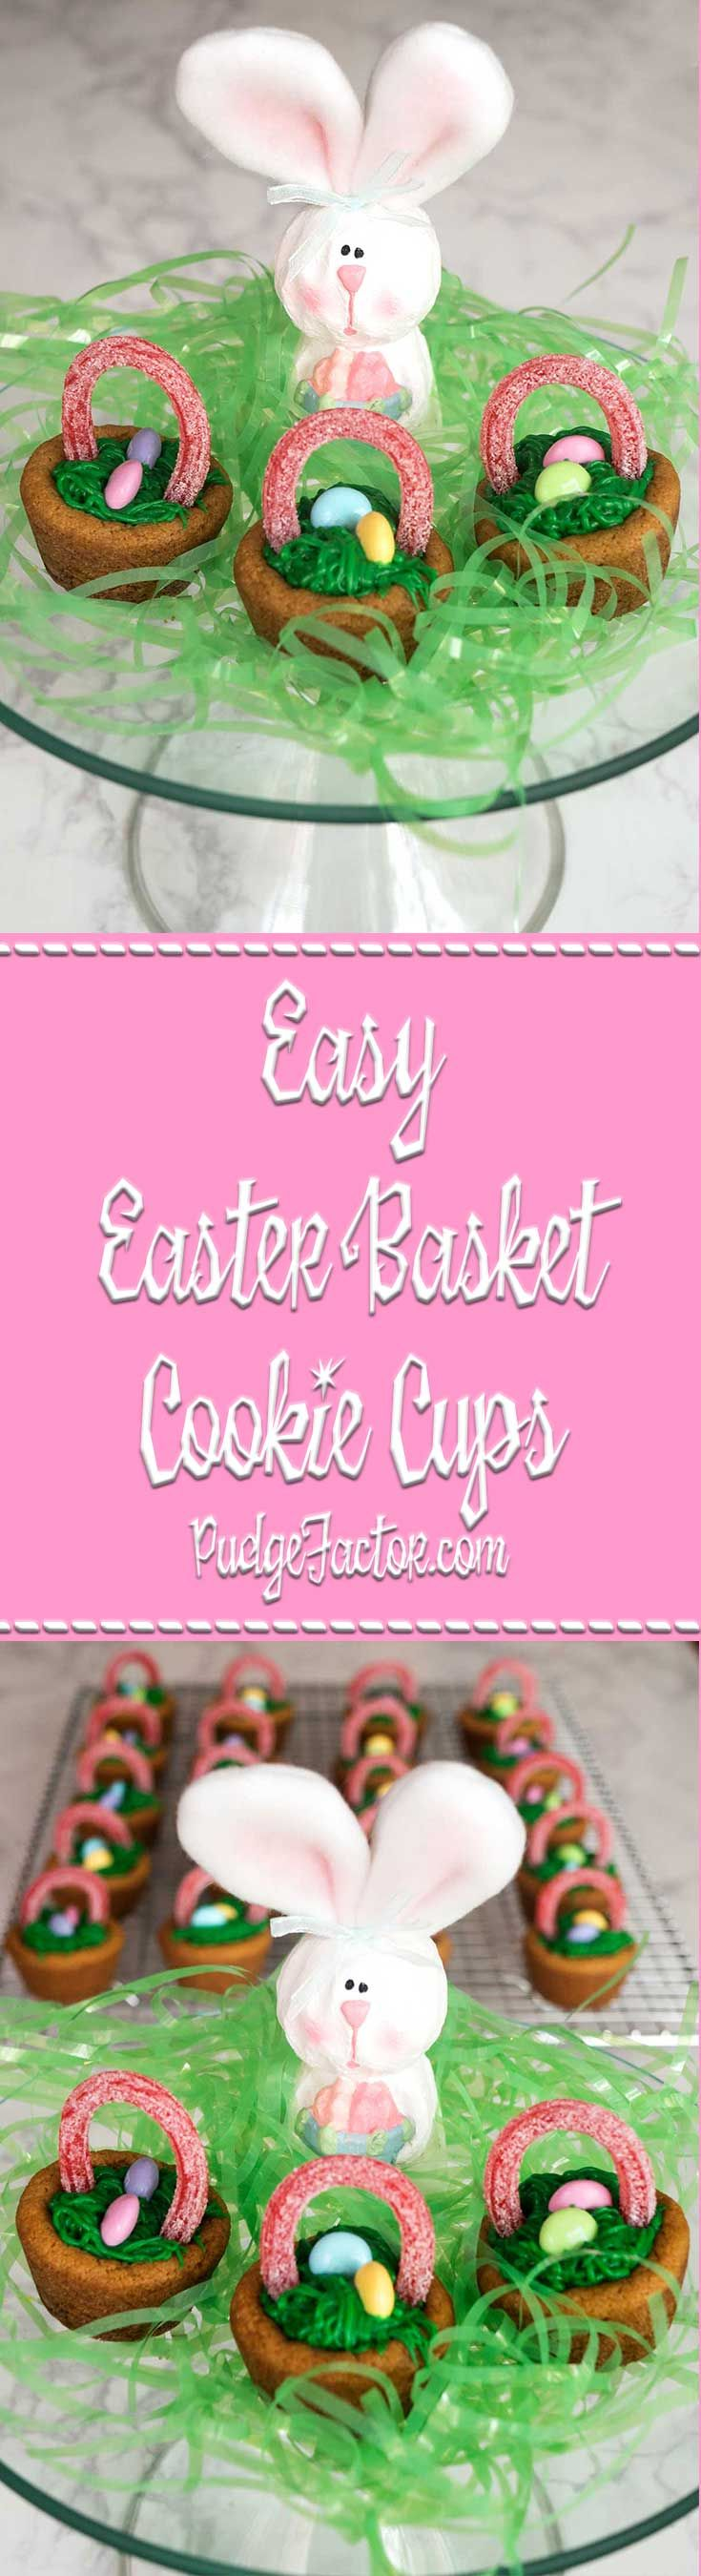 If you're looking for an easy treat for Easter, look no further! These Easy Easter Basket Cookie Cups take only a few ingredients, and are a snap to make. via @c2king